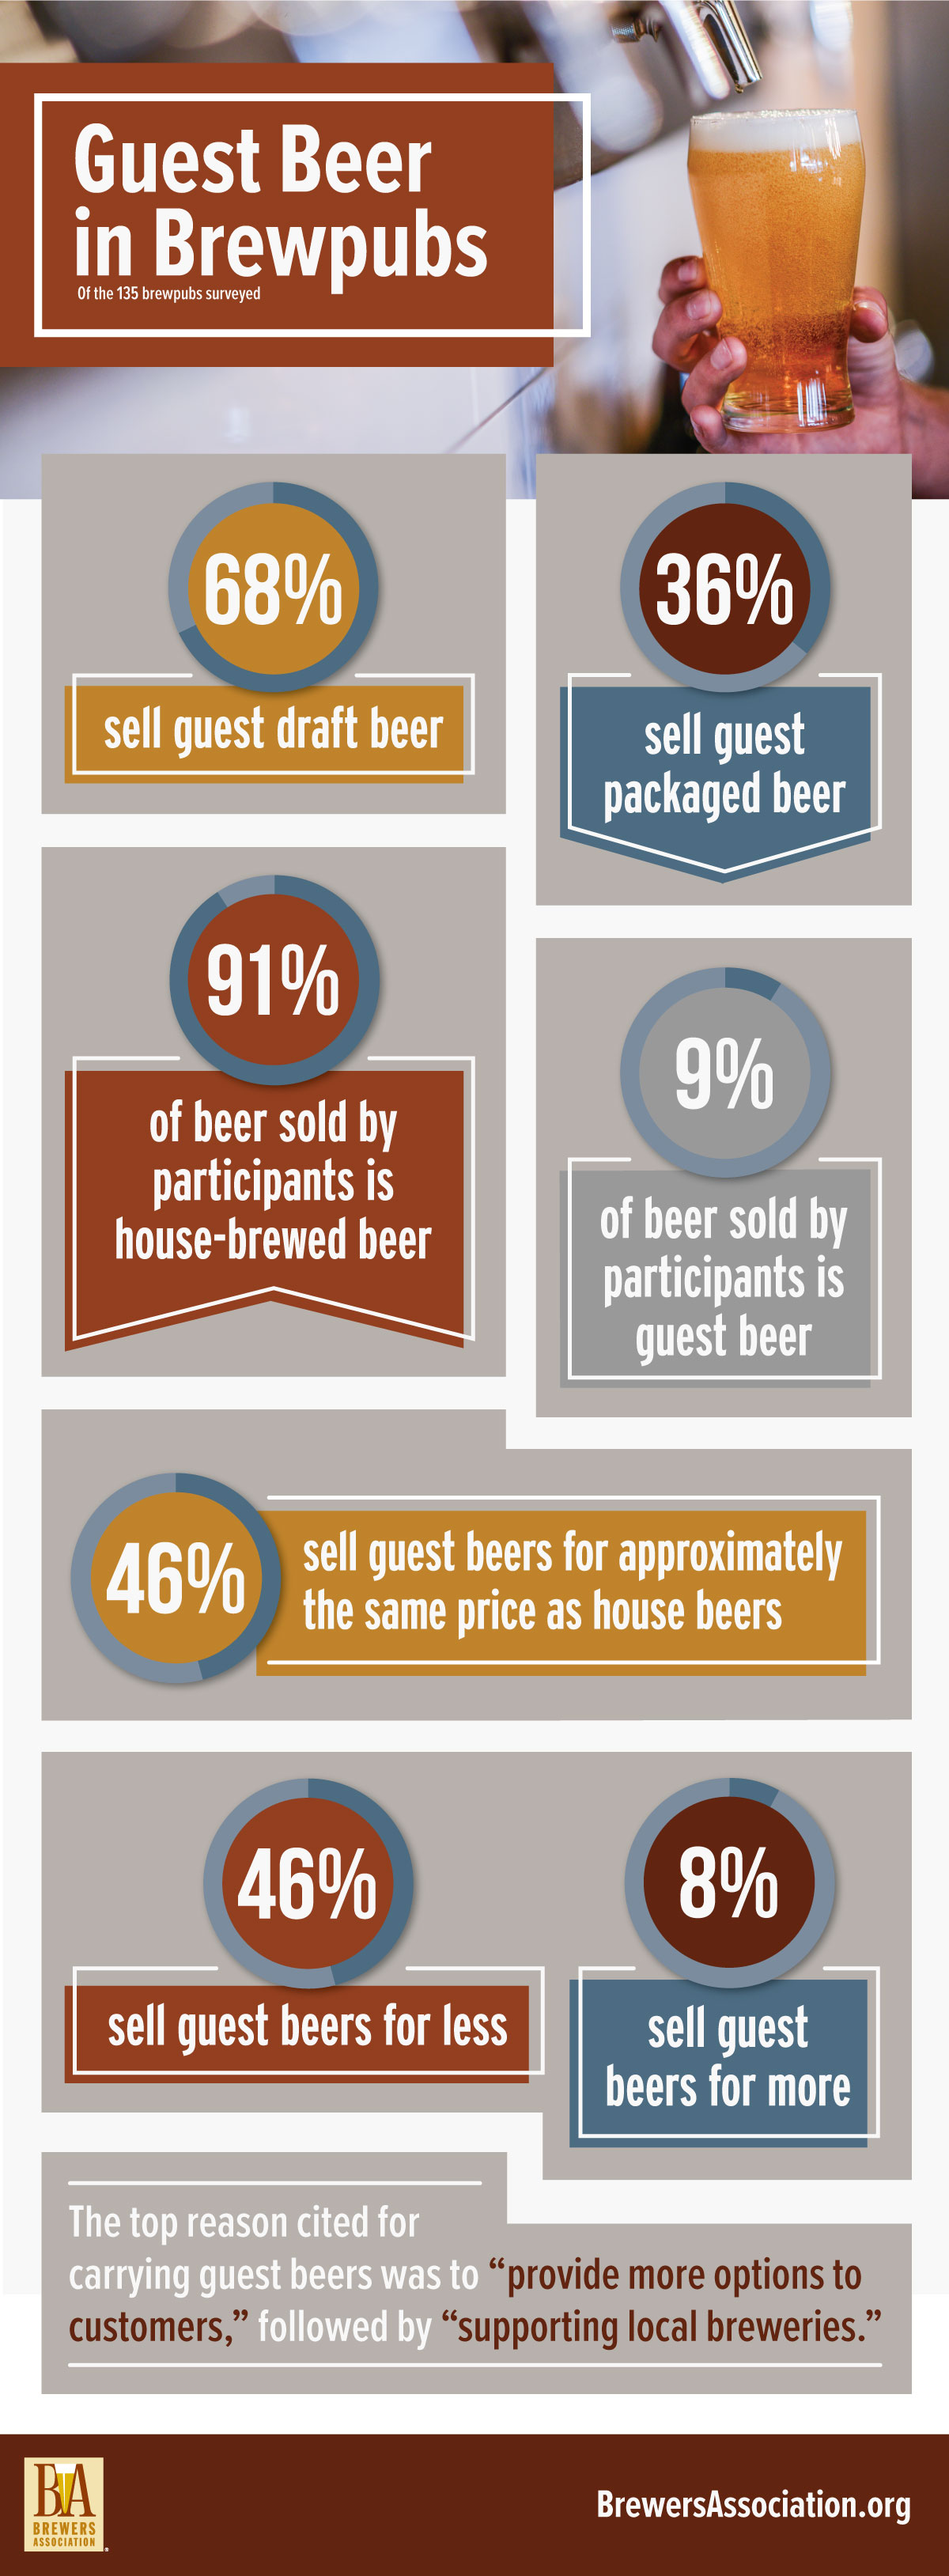 Guest Beer in Brewpubs Infographic